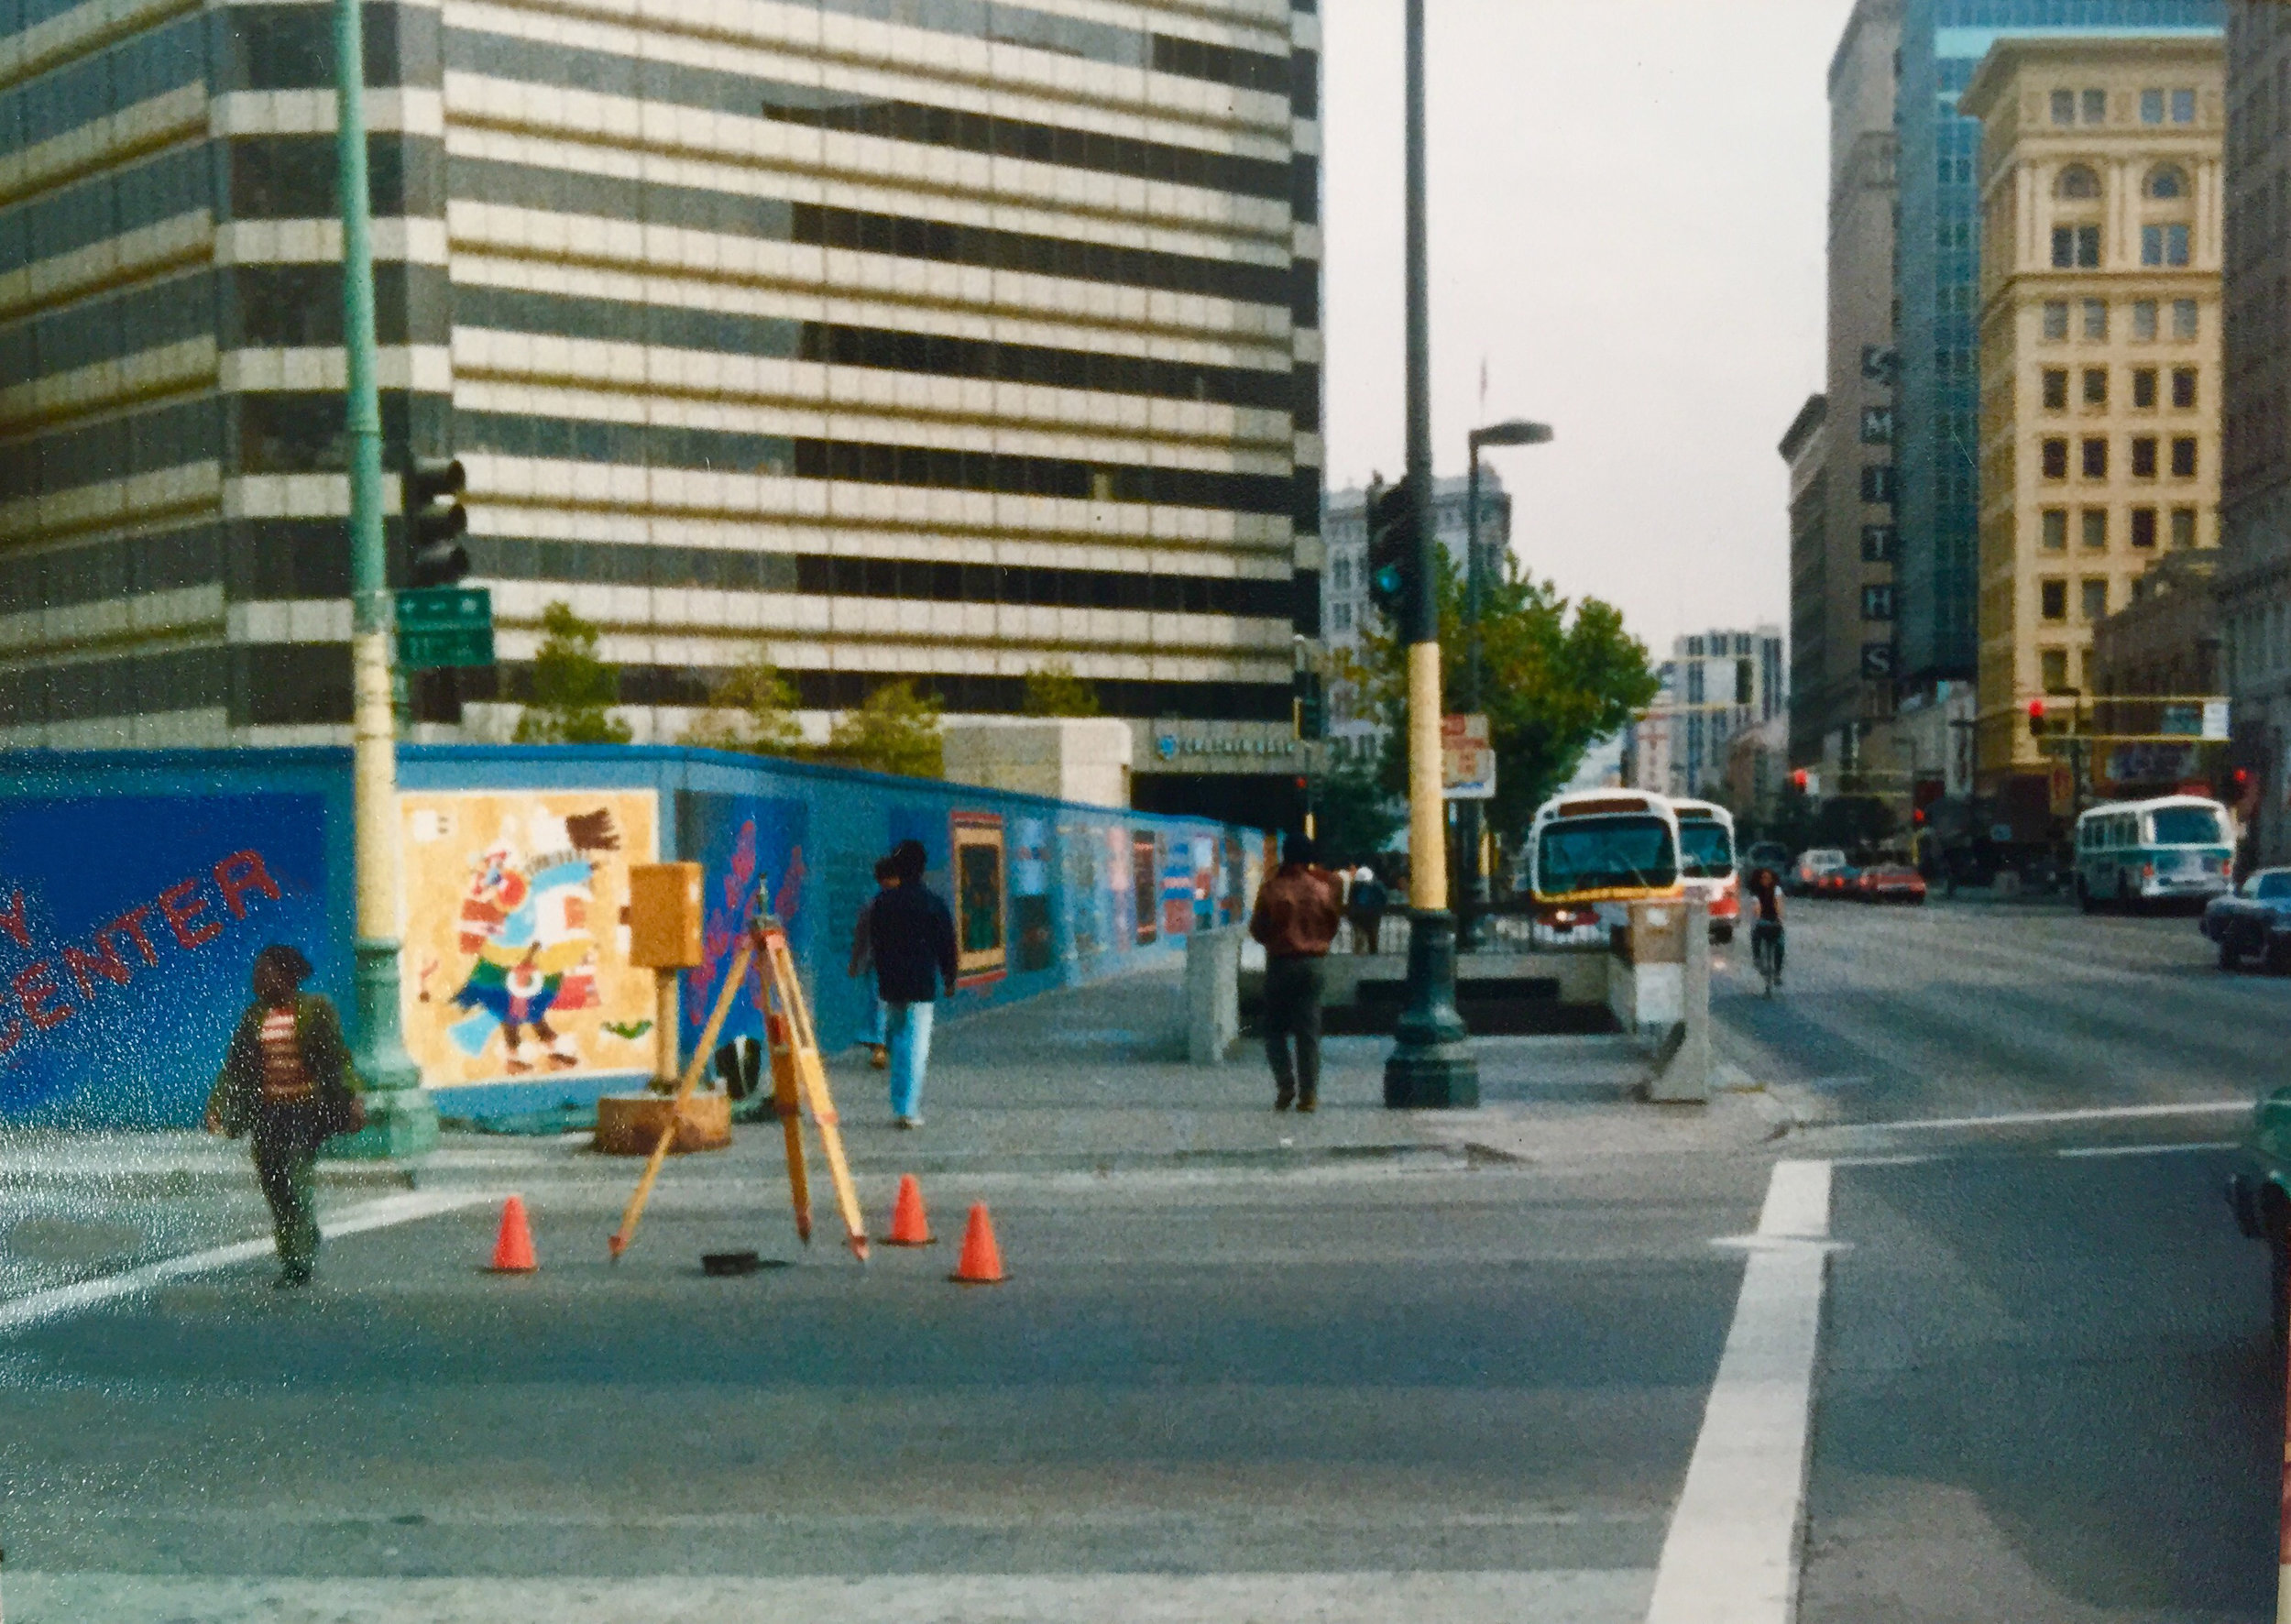 City Center mural 1981 Graham1.jpg